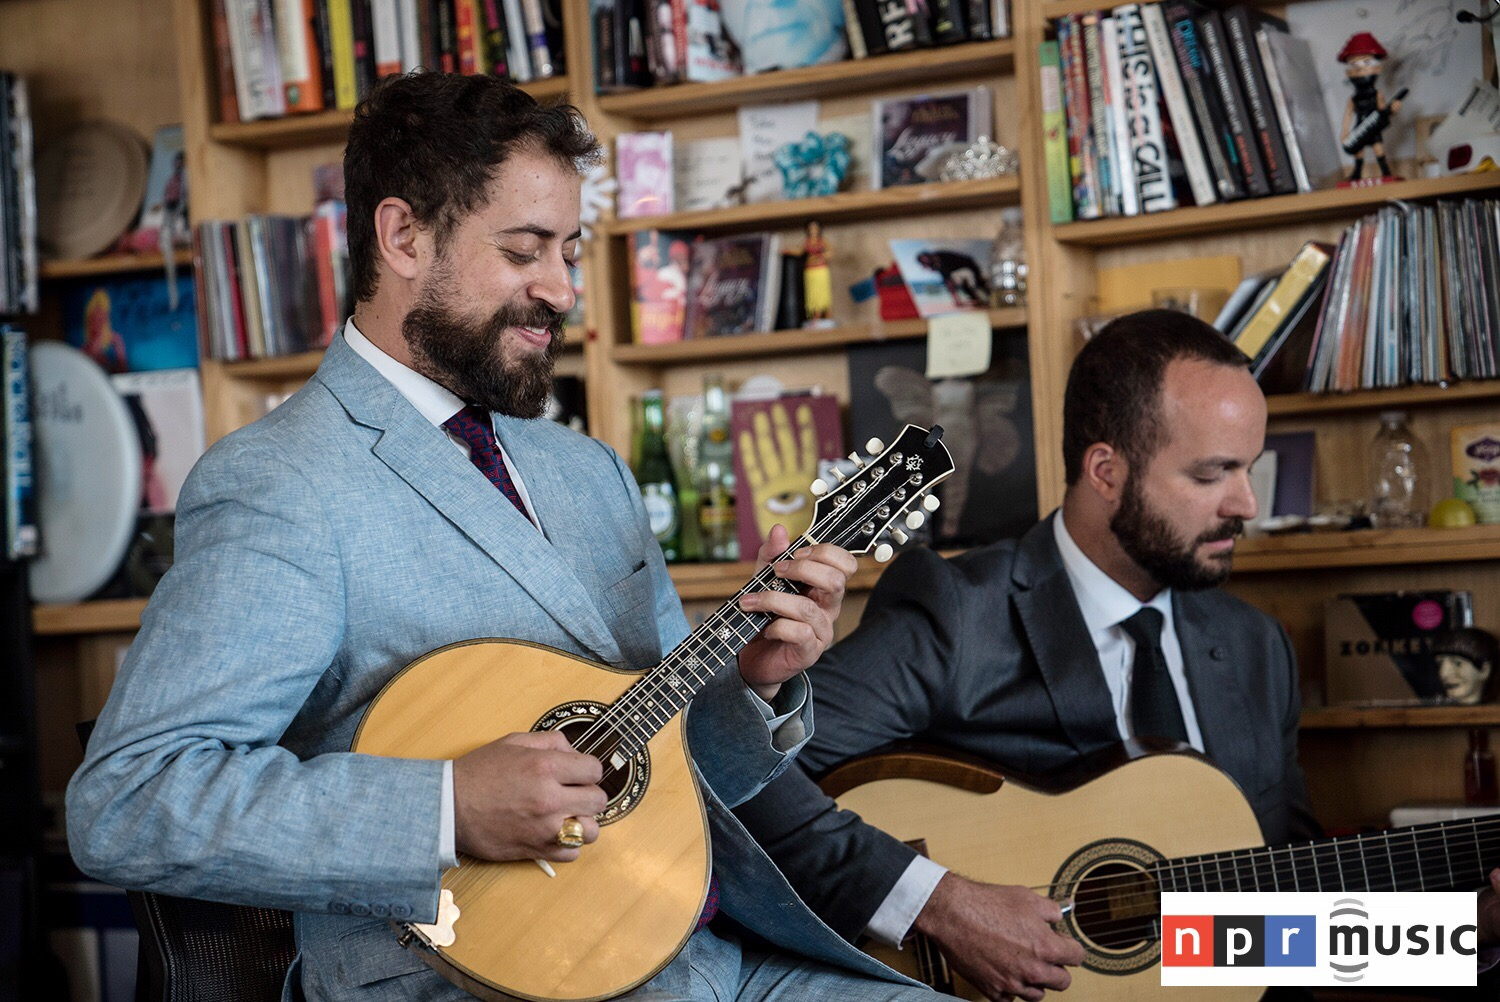 Danilo Brito on Tiny Desk Concert of NPR